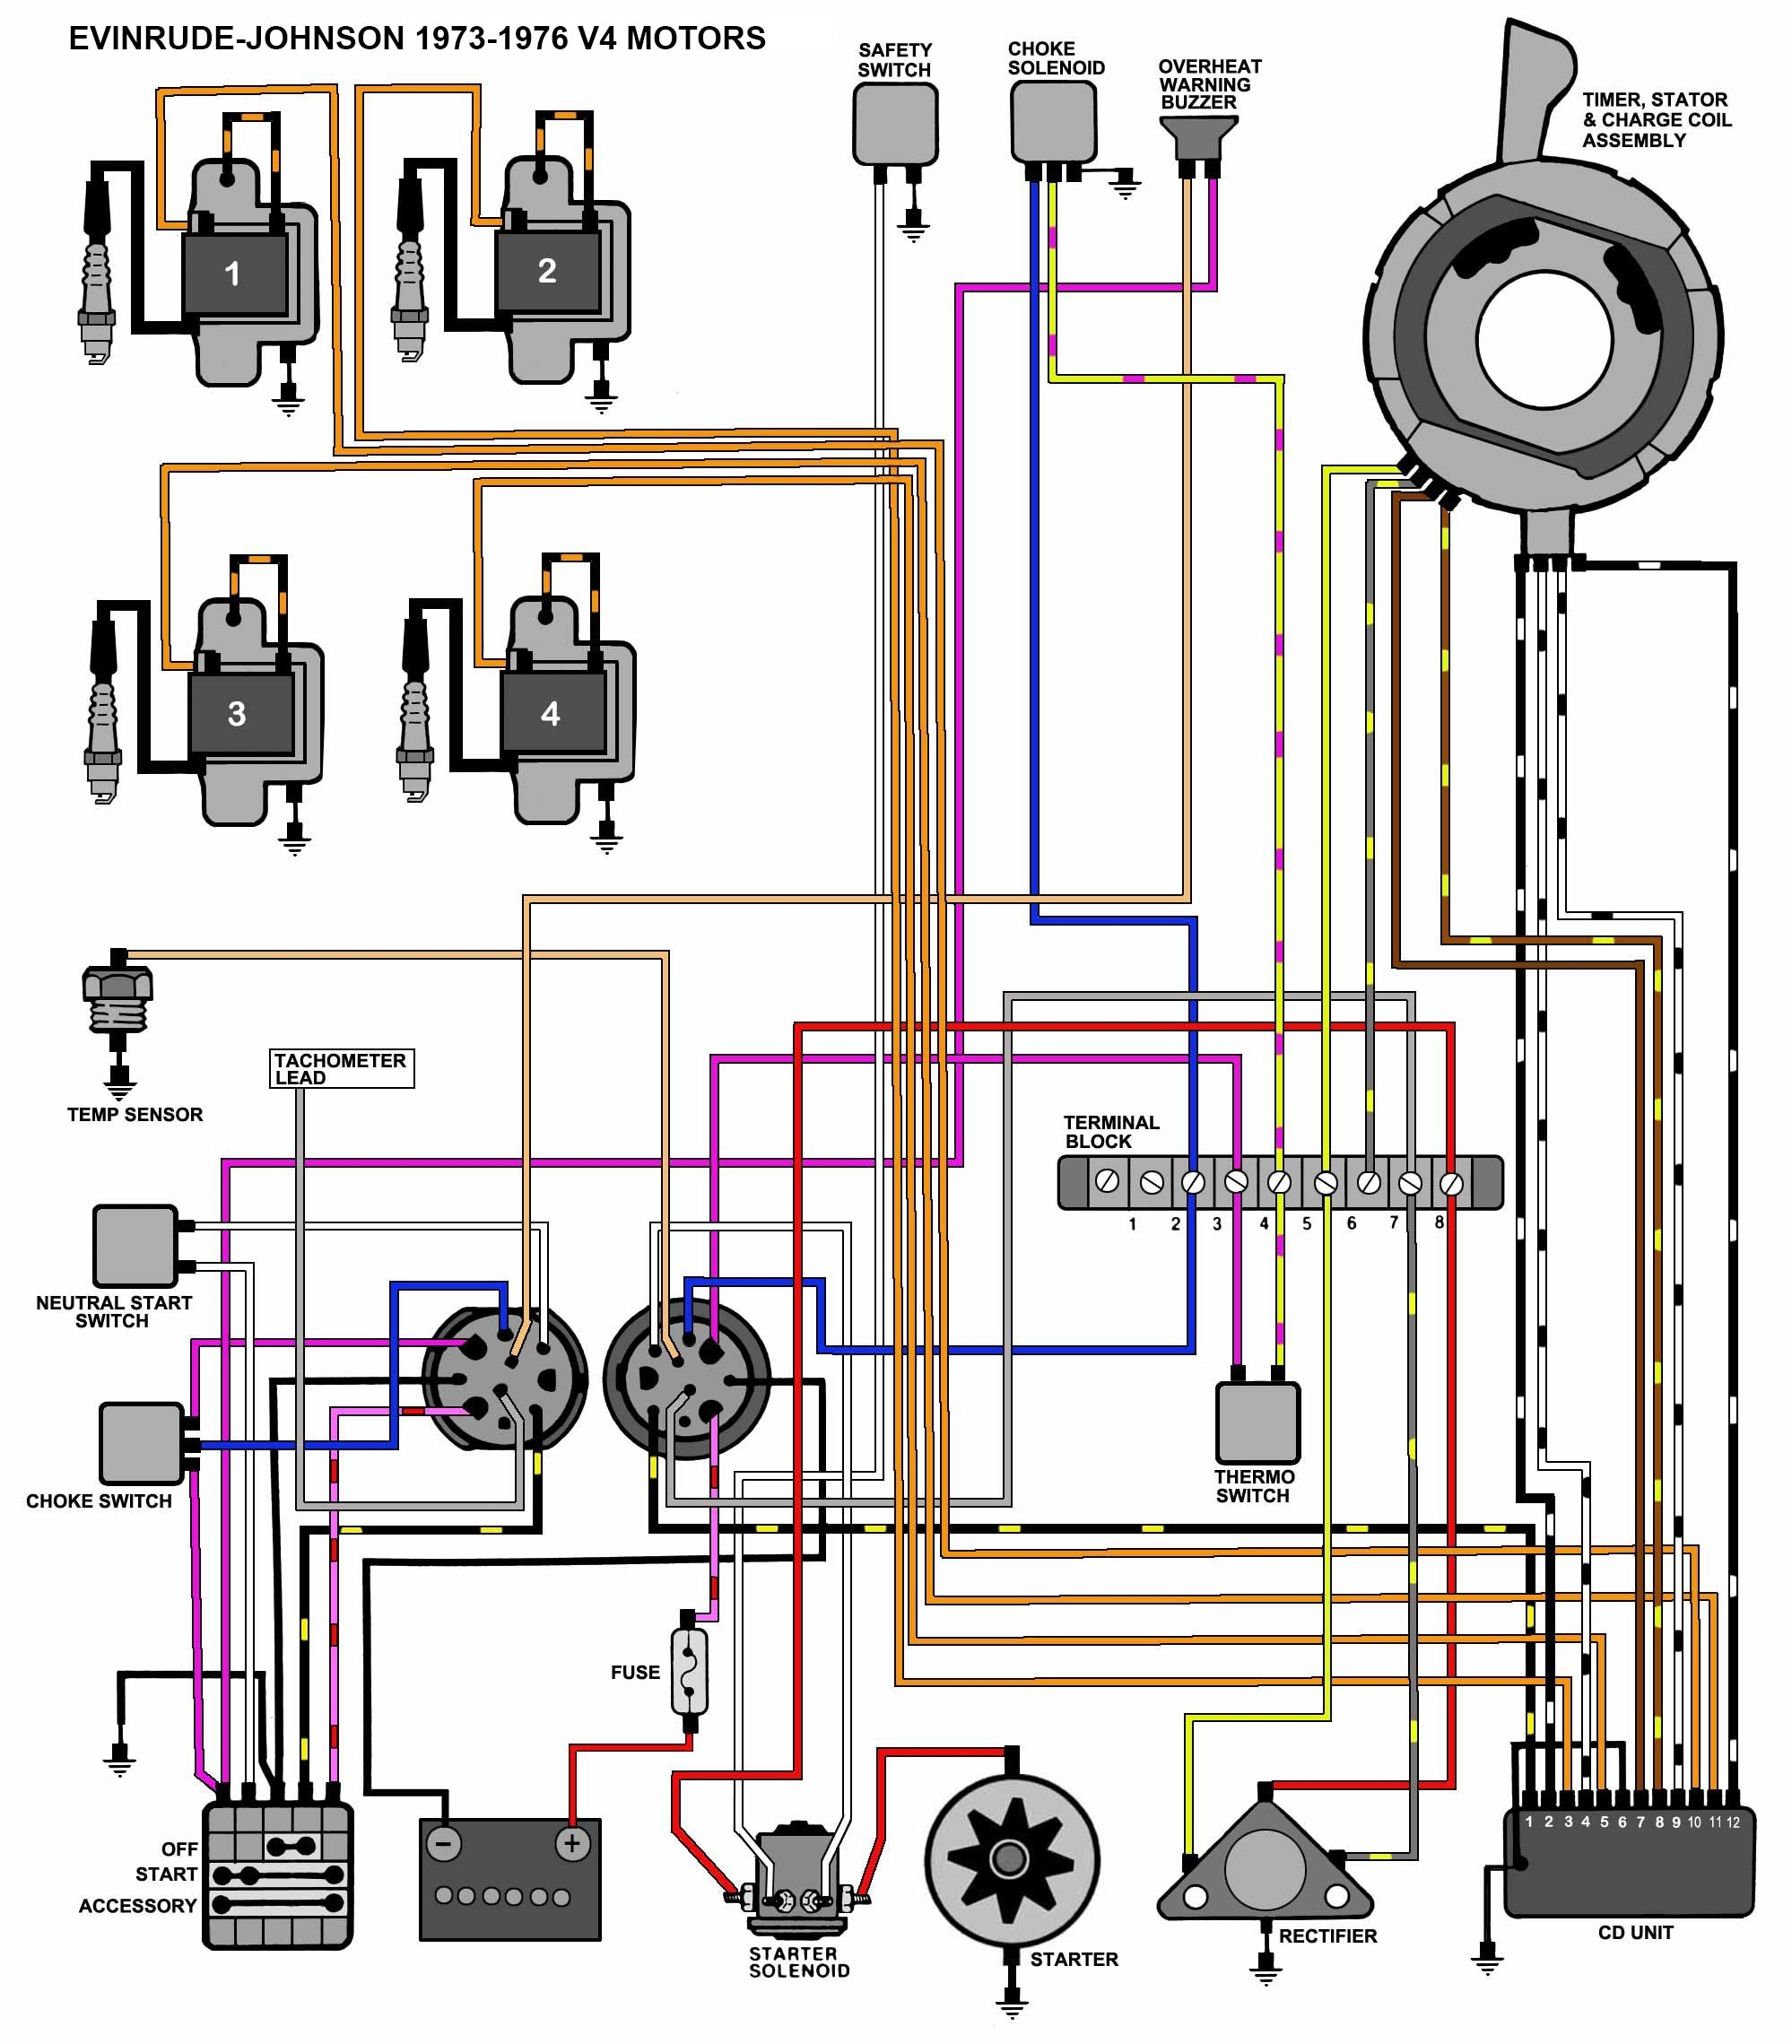 evinrude ignition switch wiring diagram with 1969 omc 55 wiring throughout 70 hp evinrude wiring diagram?resize\\\\\\\\\\\\\\\\\\\\\\\\\\\\\\\=665%2C759\\\\\\\\\\\\\\\\\\\\\\\\\\\\\\\&ssl\\\\\\\\\\\\\\\\\\\\\\\\\\\\\\\=1 1999 70 hp evinrude wiring diagram wiring diagram simonand  at panicattacktreatment.co